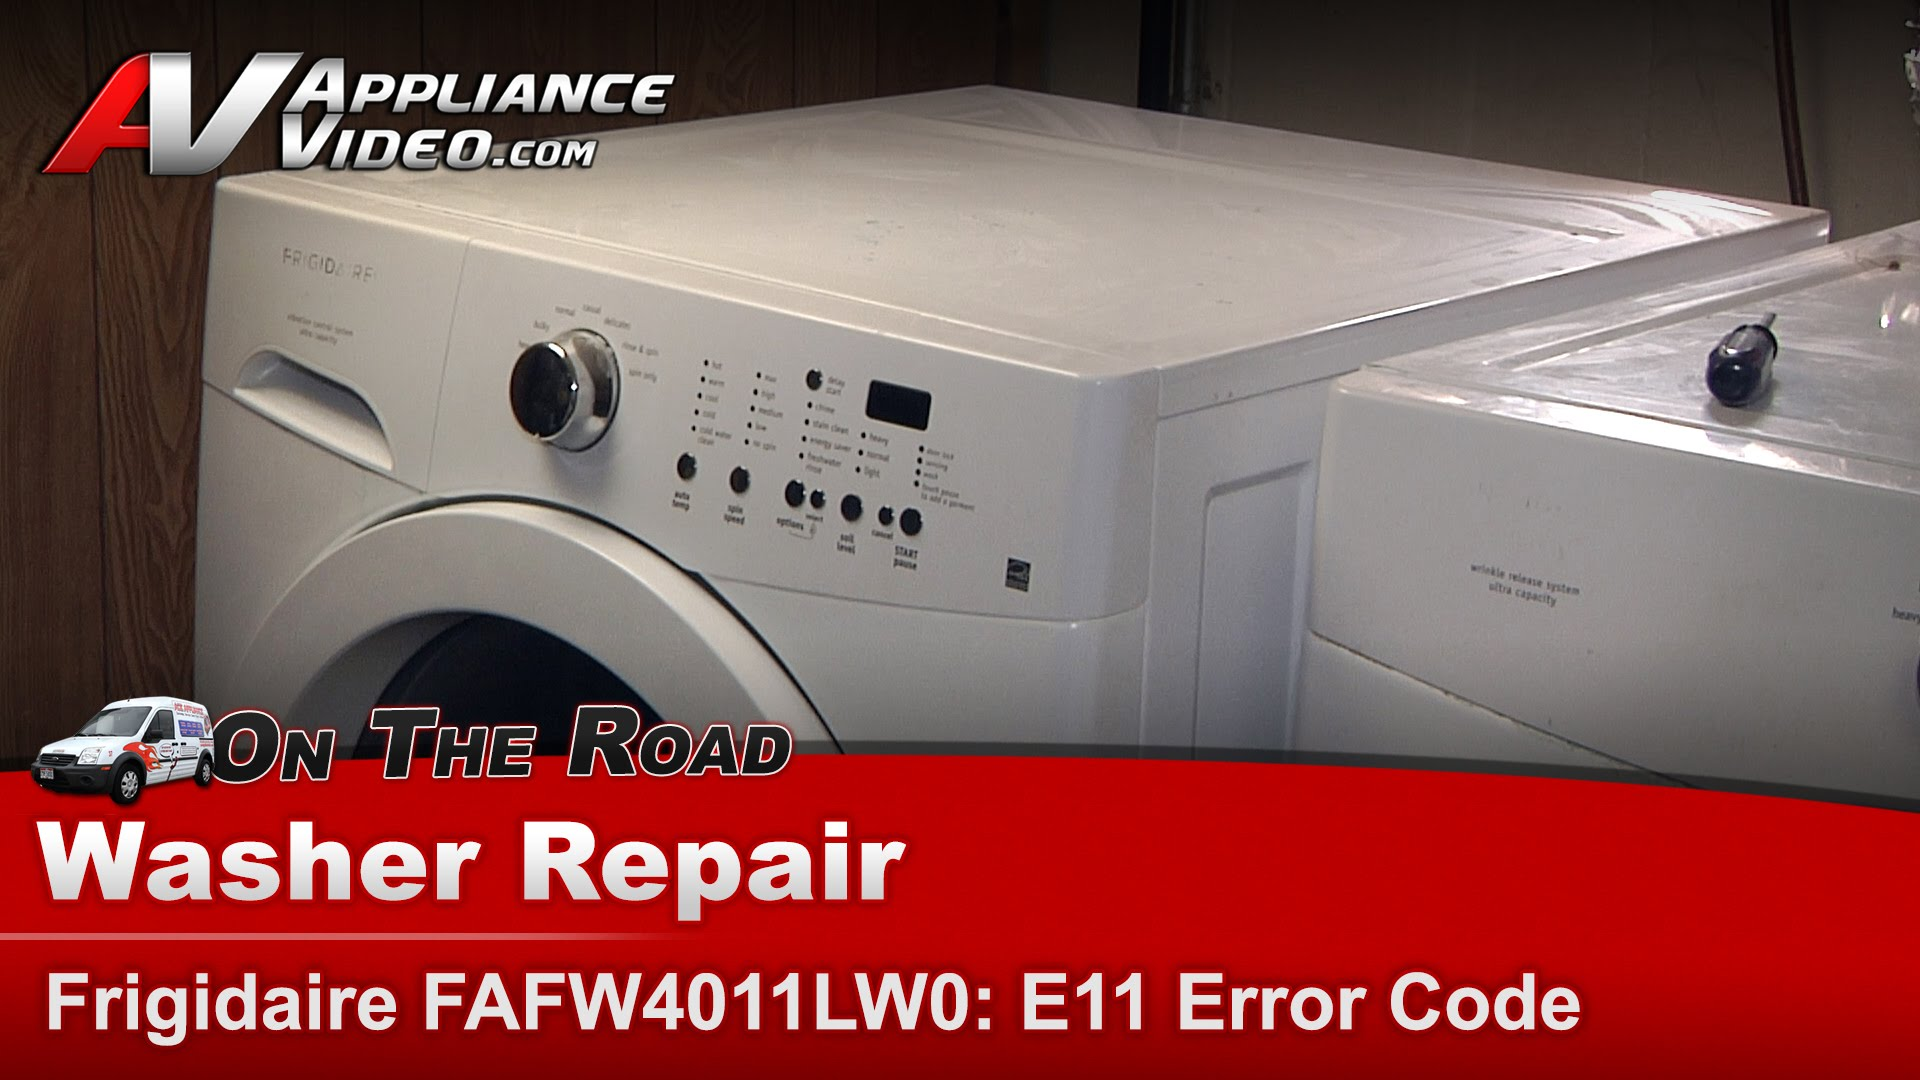 Frigidaire FAFW4011LW0 Washer – Not spinning on heavy loads – Electronic  Control | Appliance Video